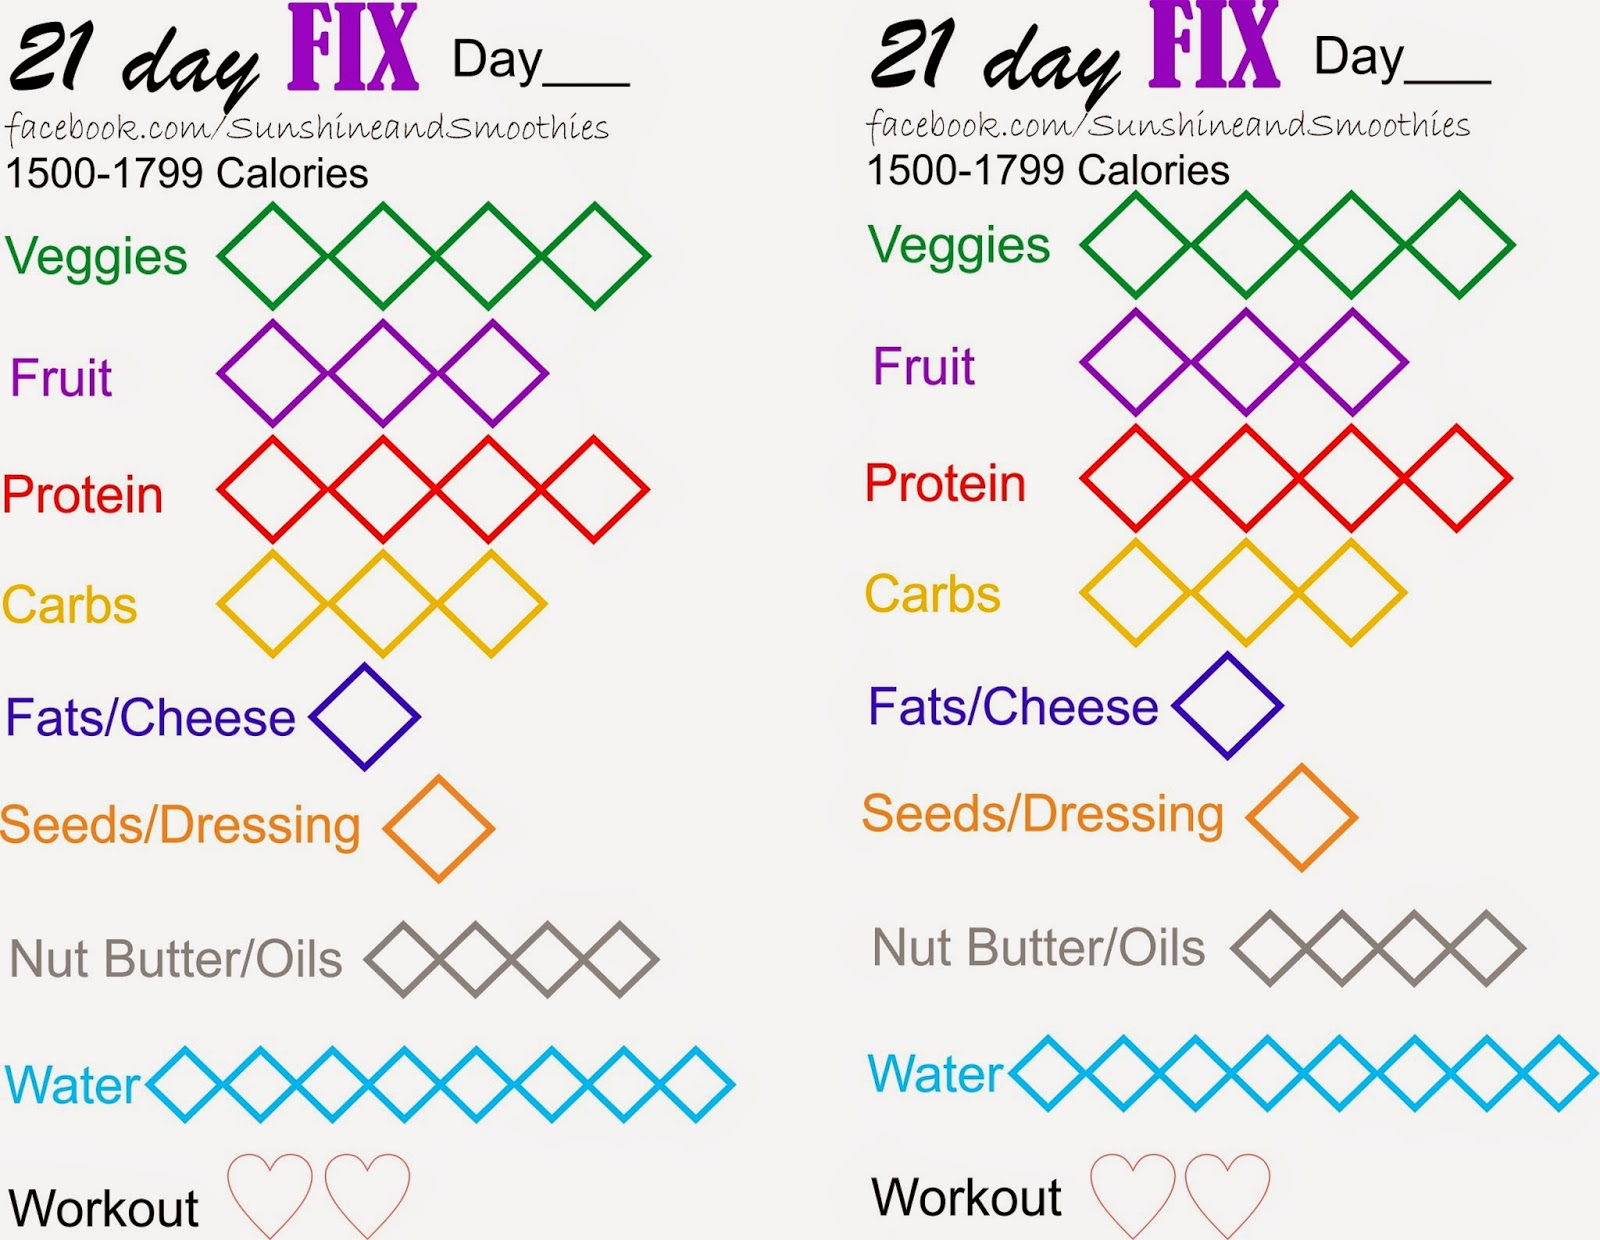 Sunshine And Smoothies Fitness 21 Day Fix Tally Sheets All Calorie Ranges